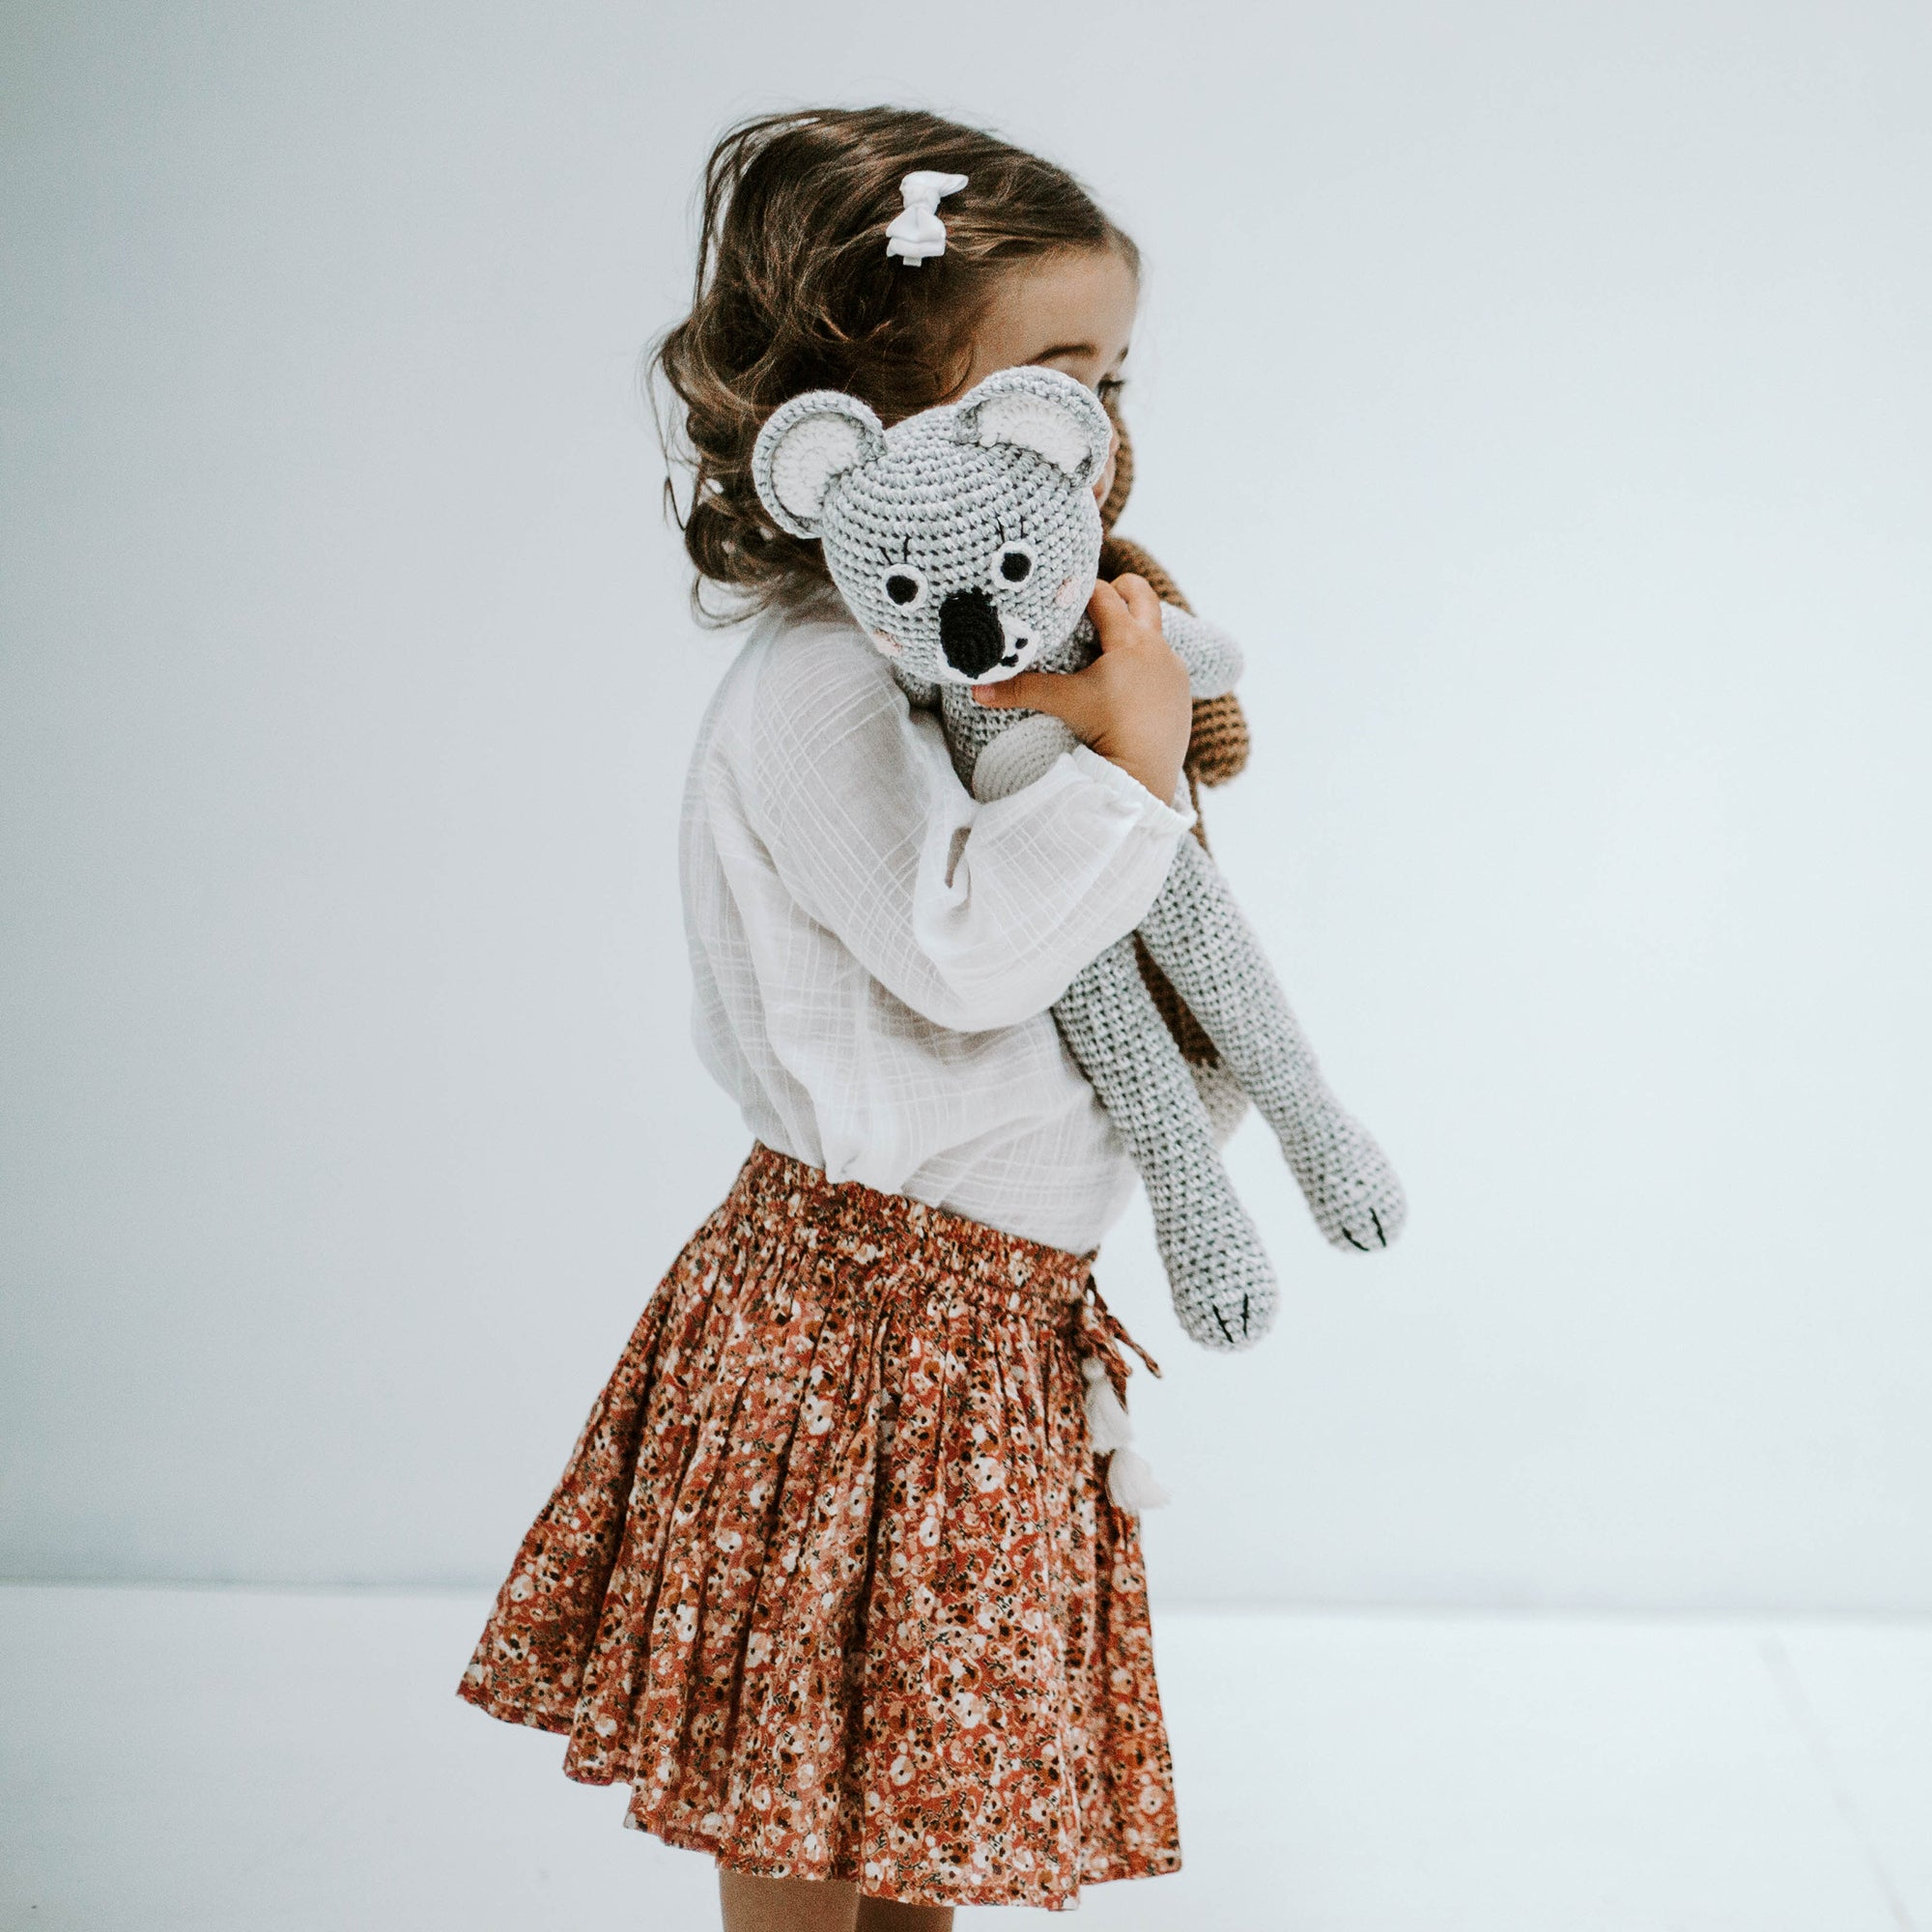 New Release Children's Wear / Solstice Collection